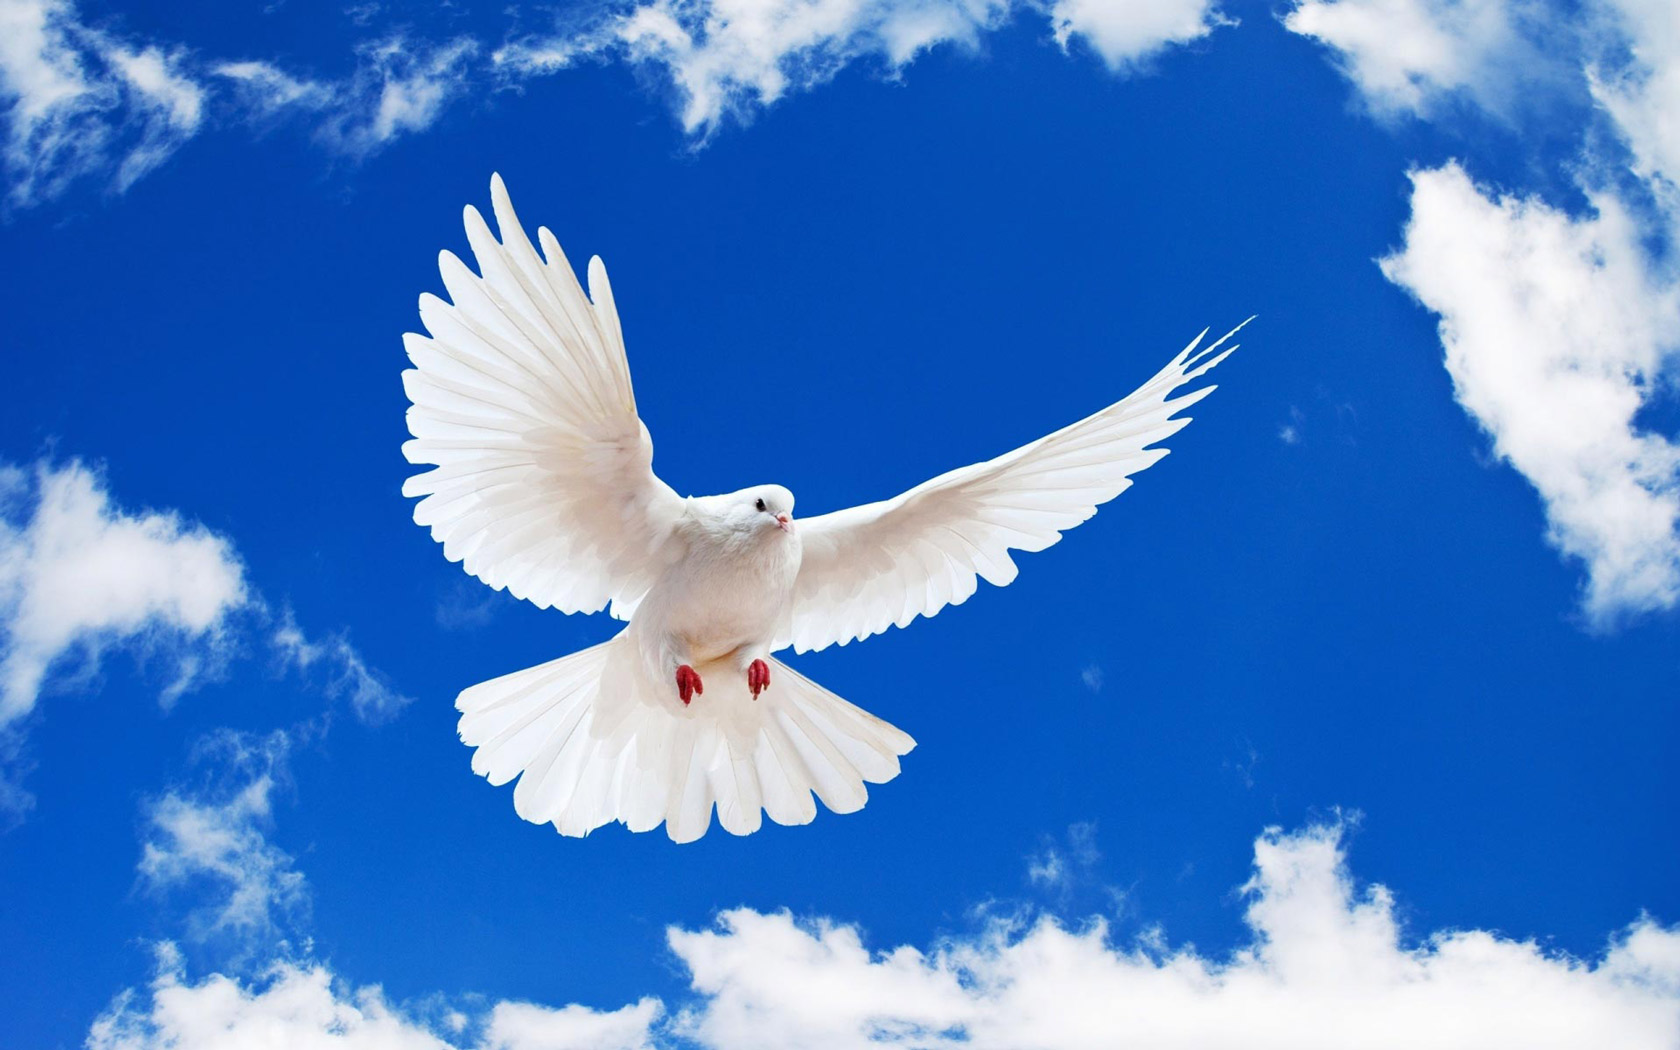 Dove Symbol of Peace 192.3 Kb